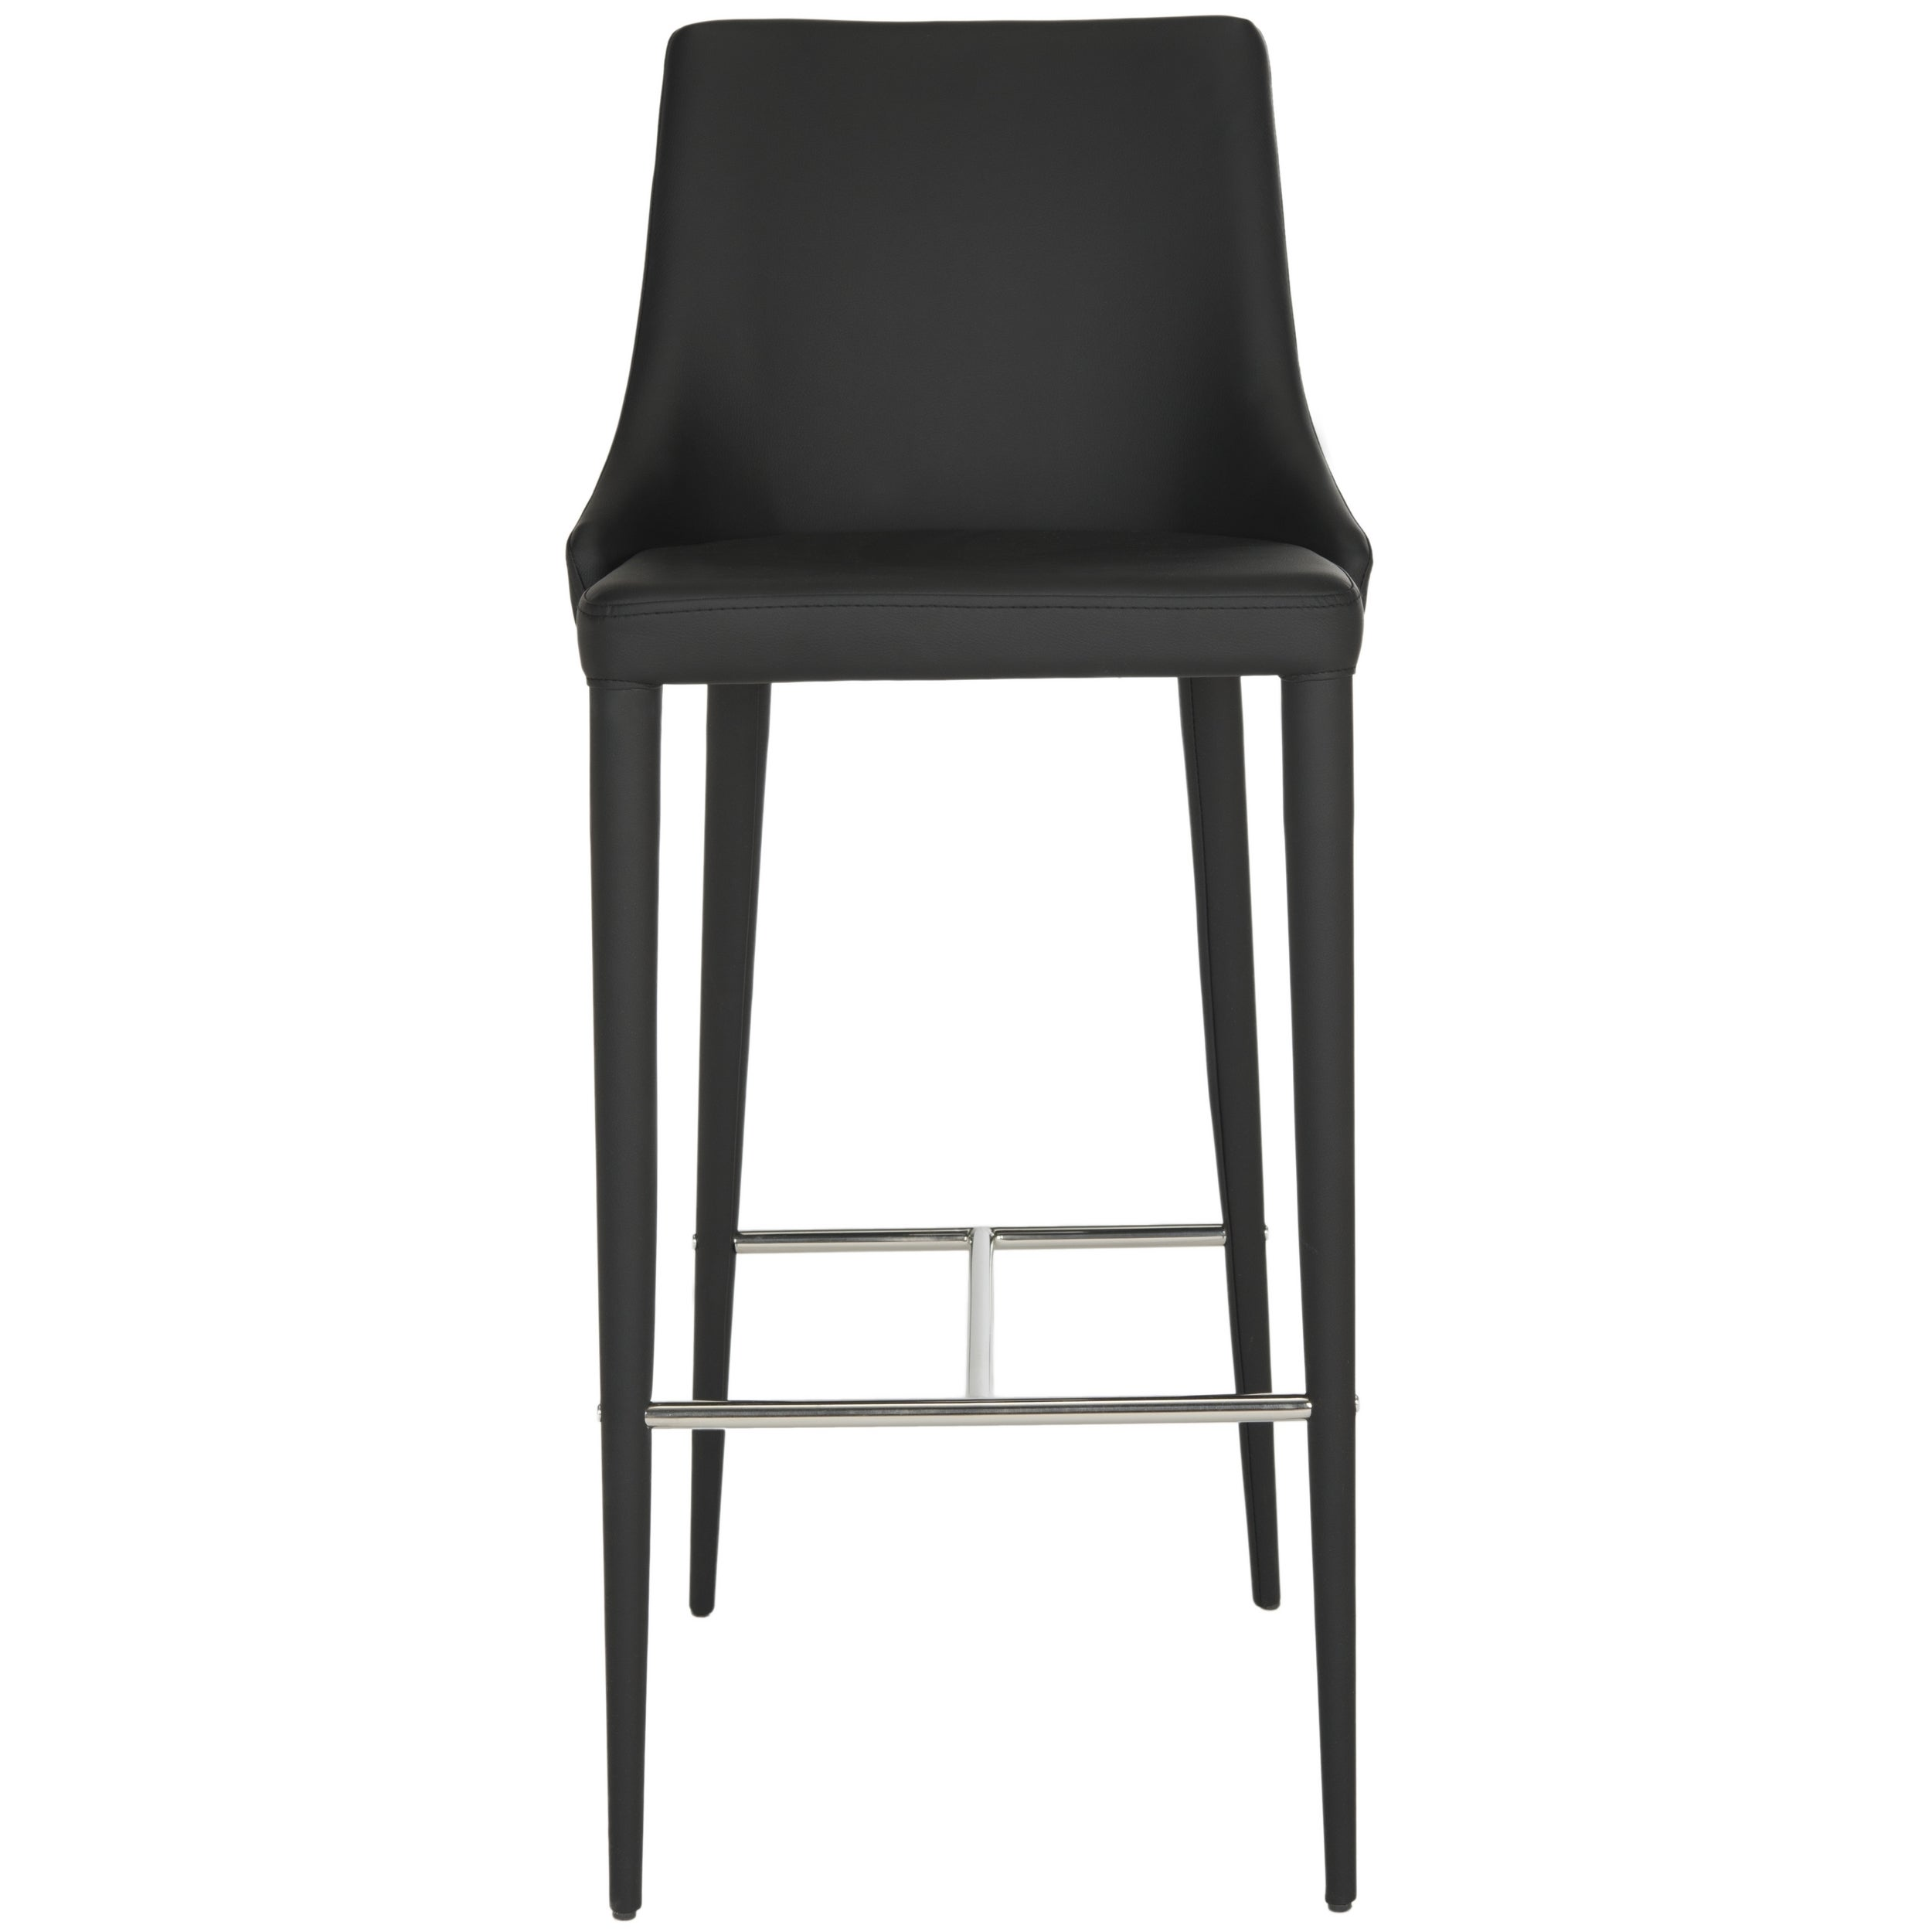 Astonishing Safavieh Mid Century Dining Summerset Modern 42 Inch Black Leather Bar Stool Squirreltailoven Fun Painted Chair Ideas Images Squirreltailovenorg